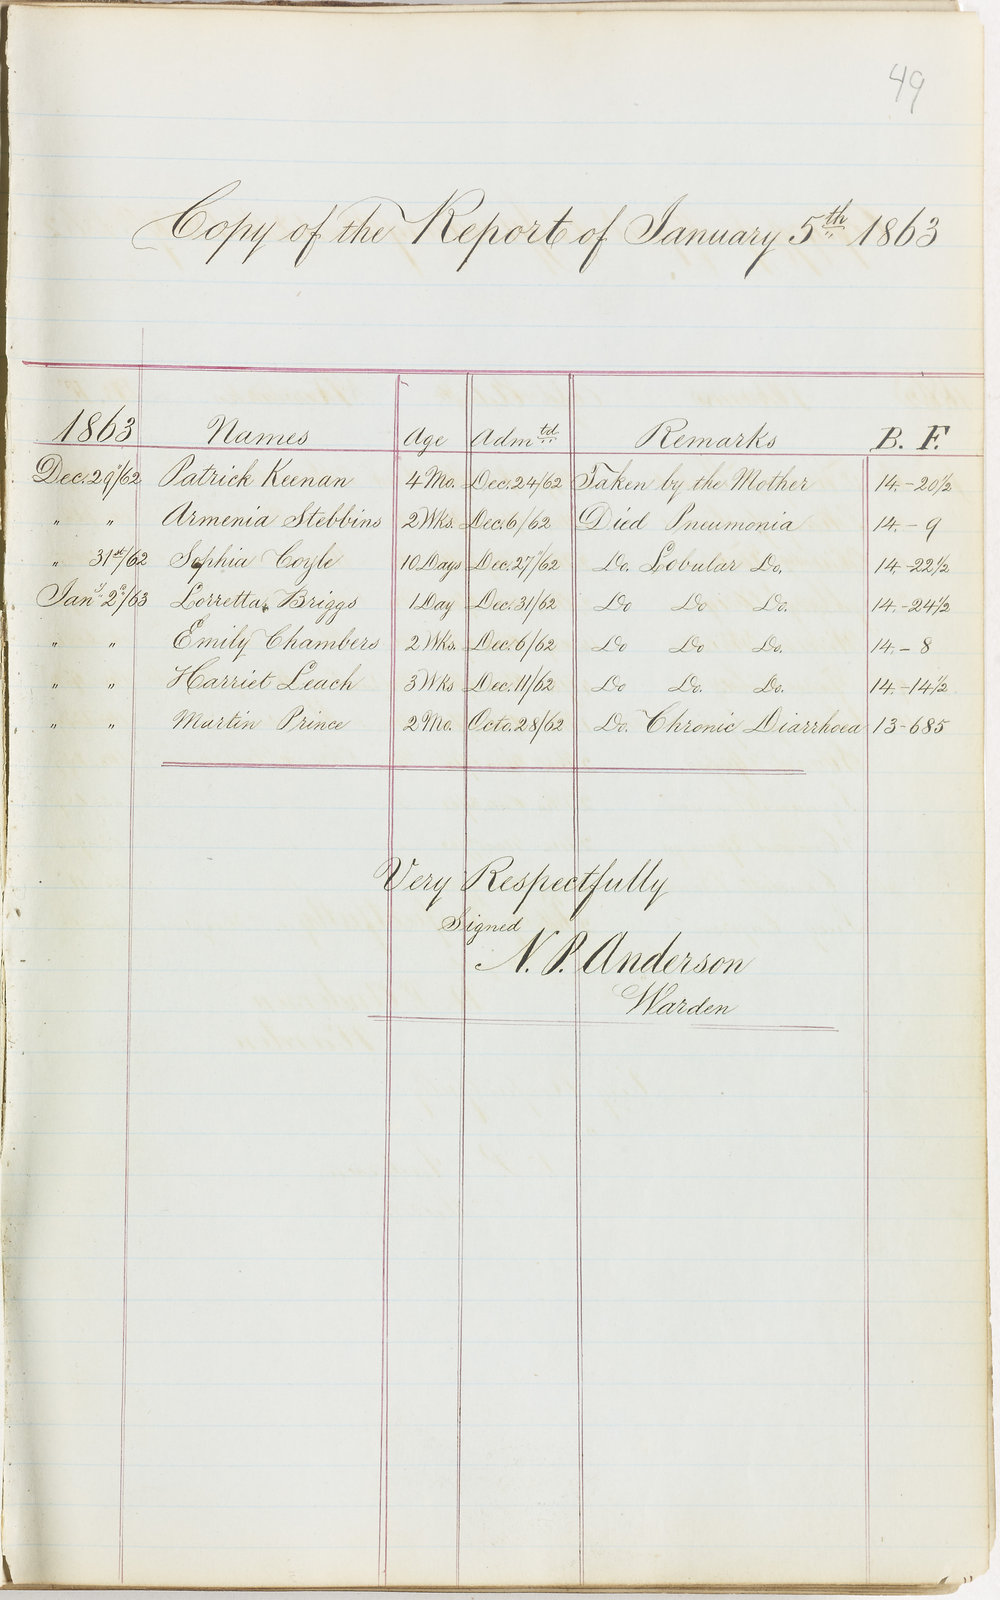 Children's Report, December 1862 – January 1863.